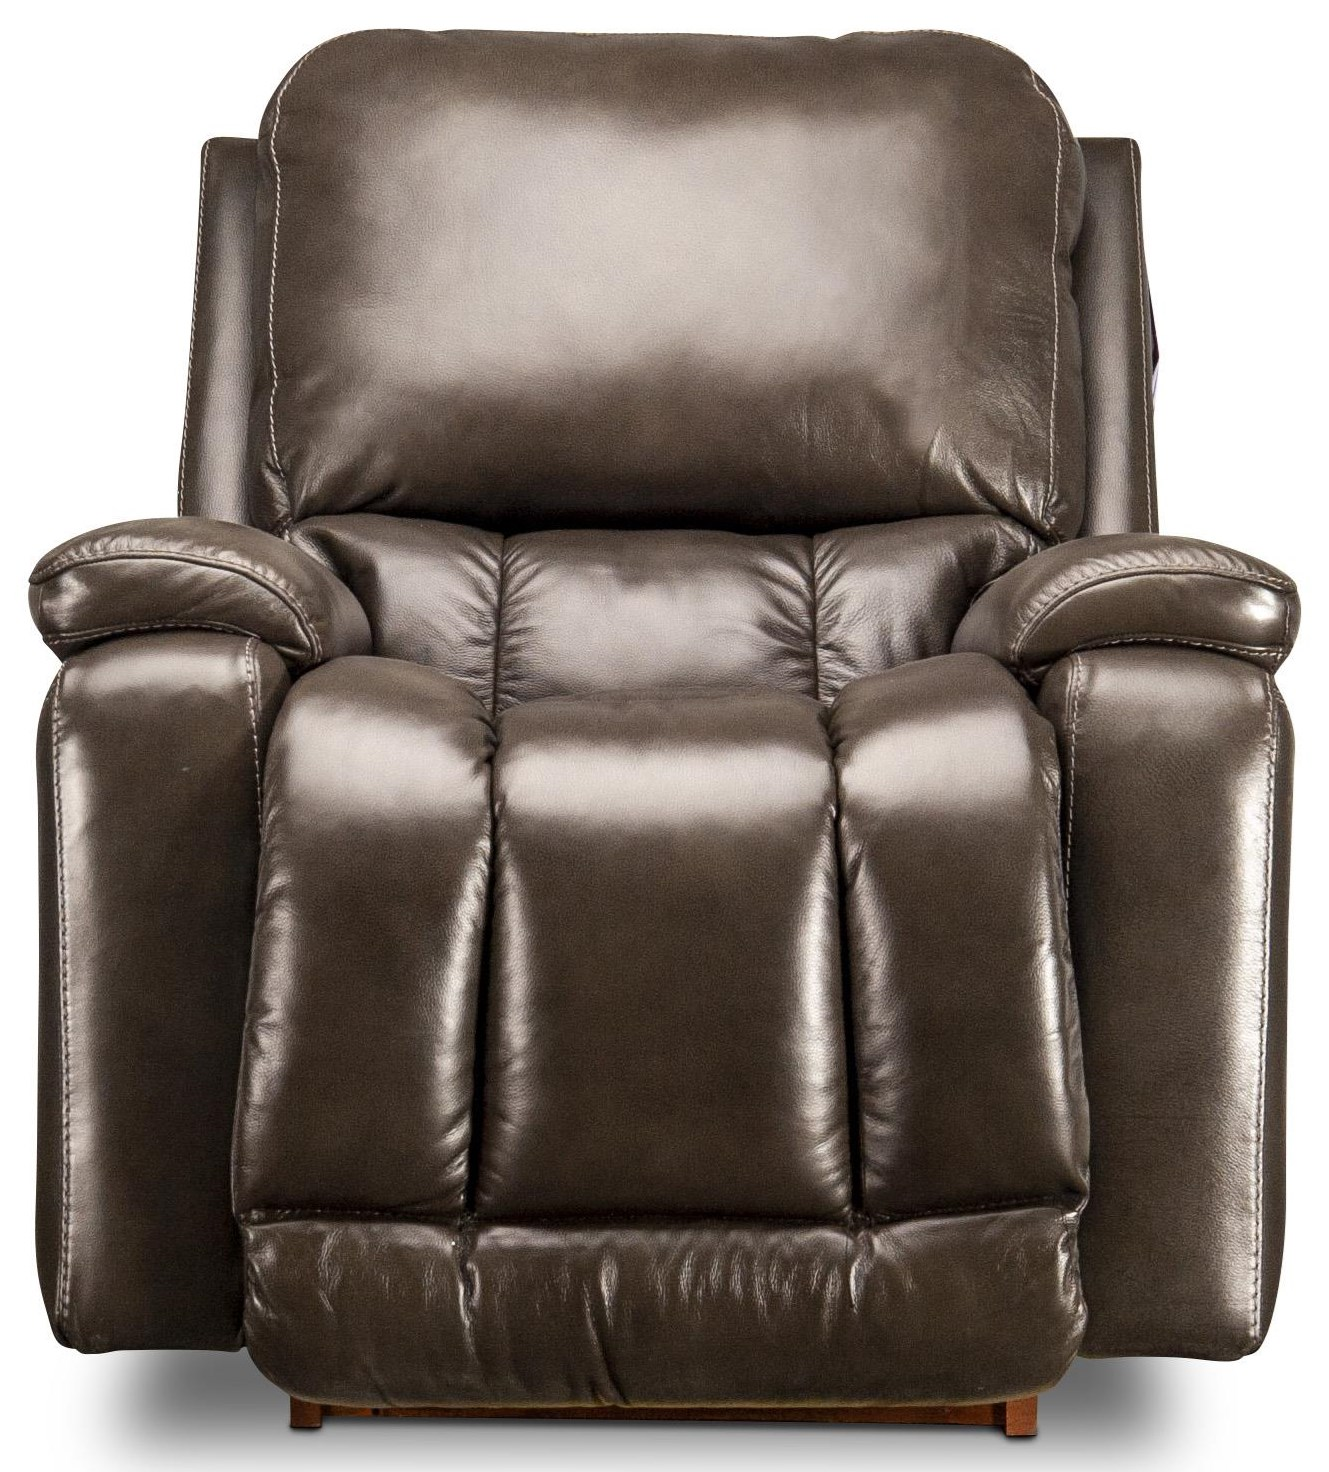 Greyson Greyson Leather Match Power Recliner by La-Z-Boy at Morris Home